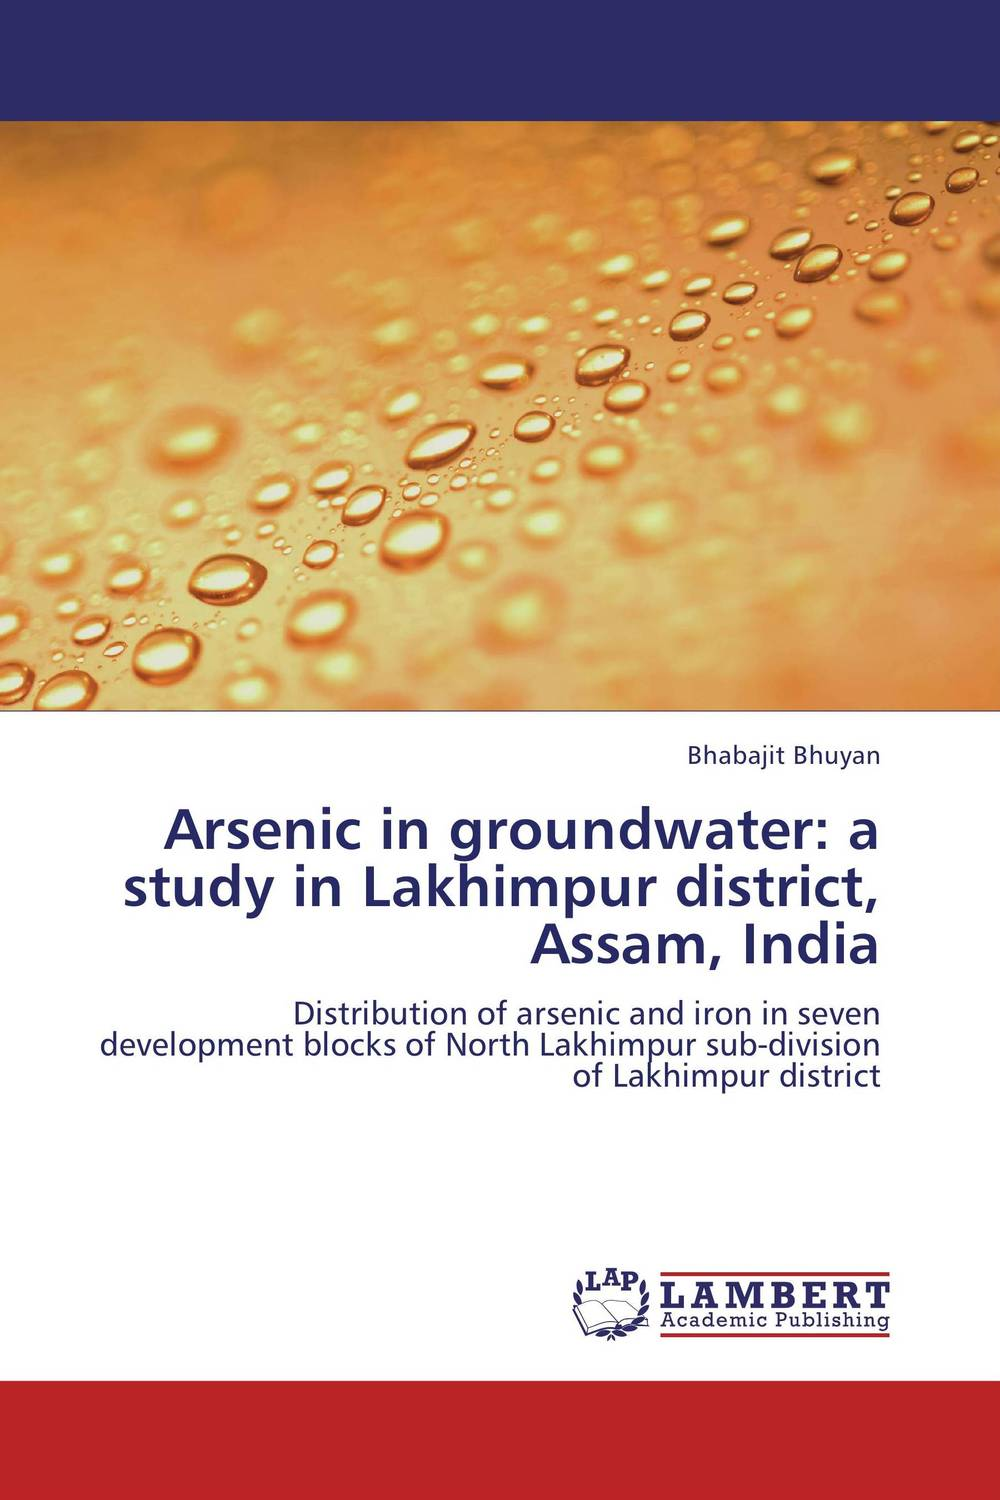 цена на Arsenic in groundwater: a study in Lakhimpur district, Assam, India